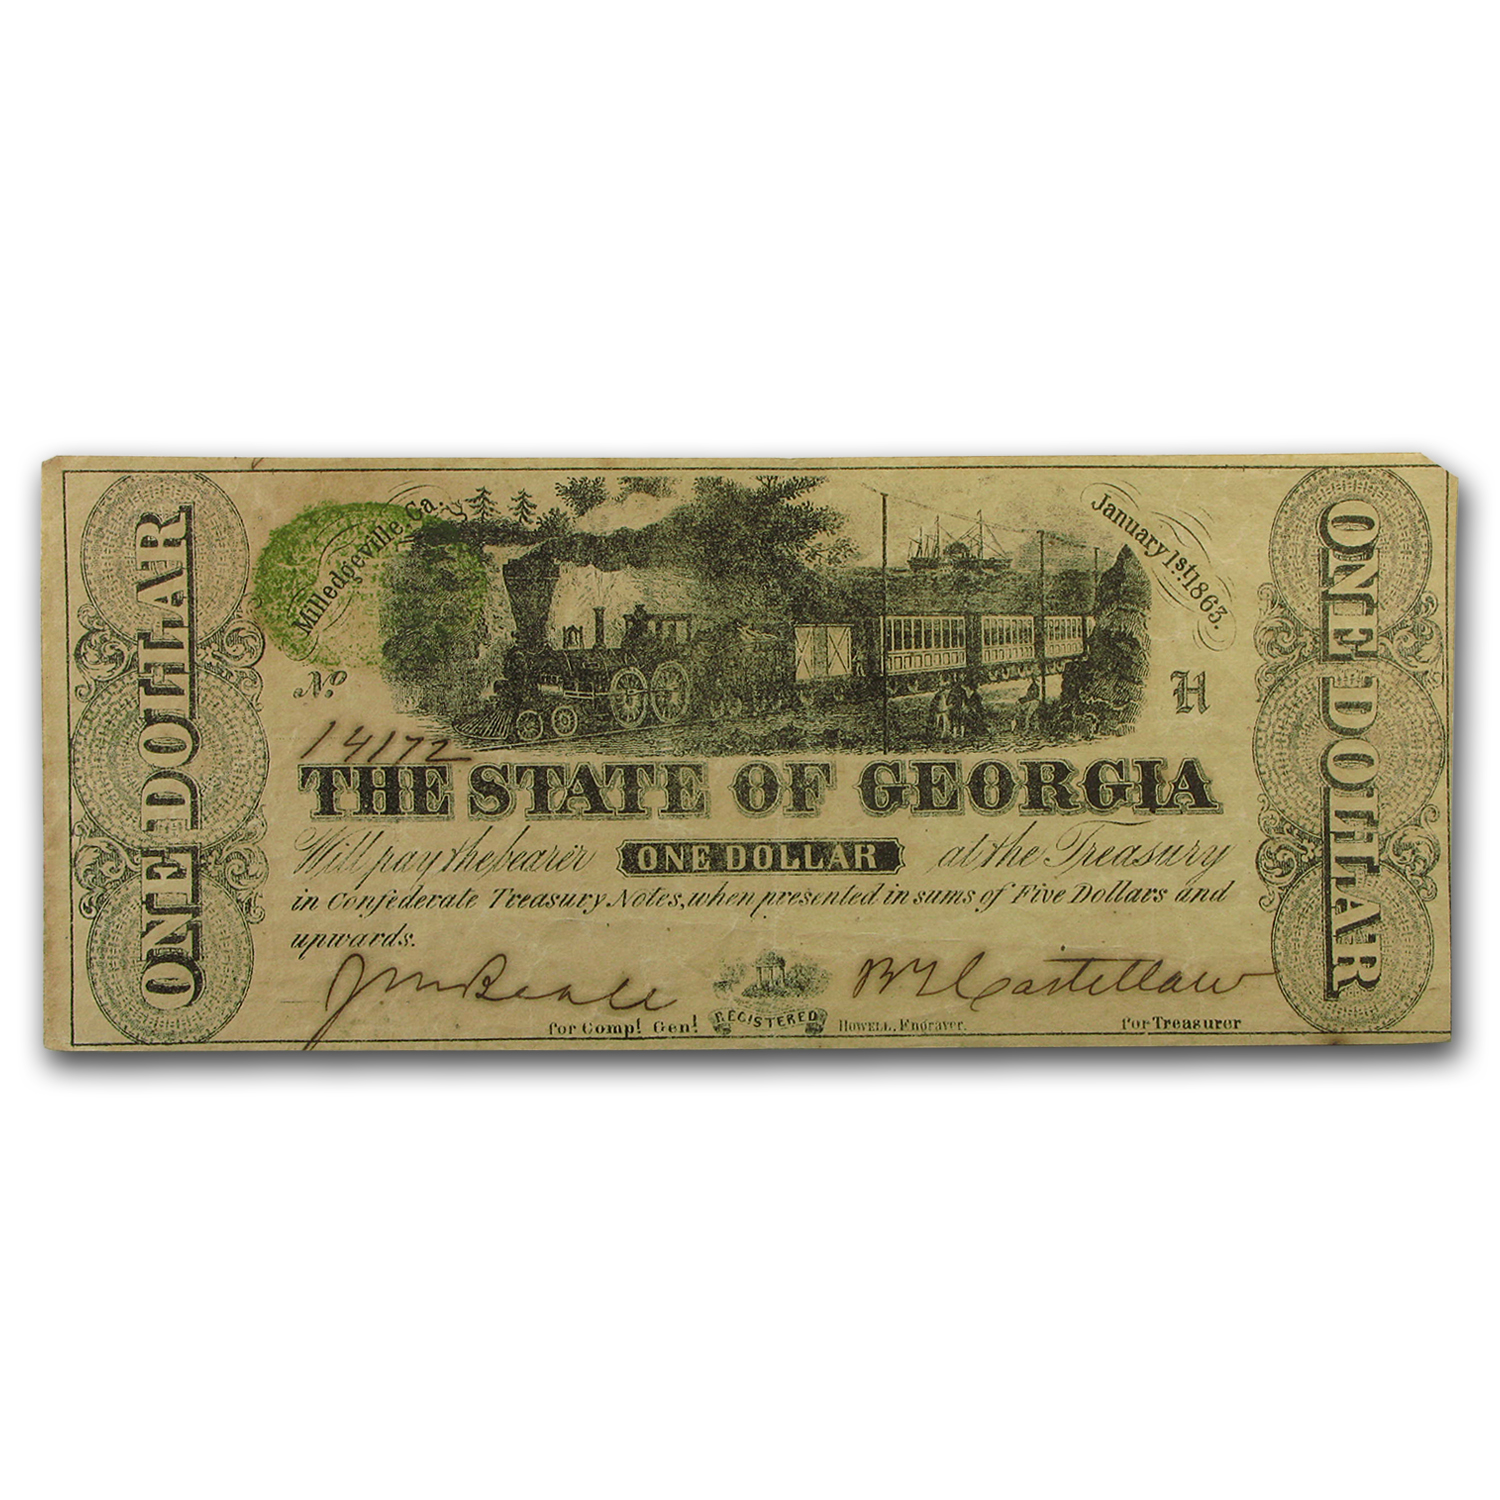 1863 State of Georgia $1.00 Note (CR-12) VF